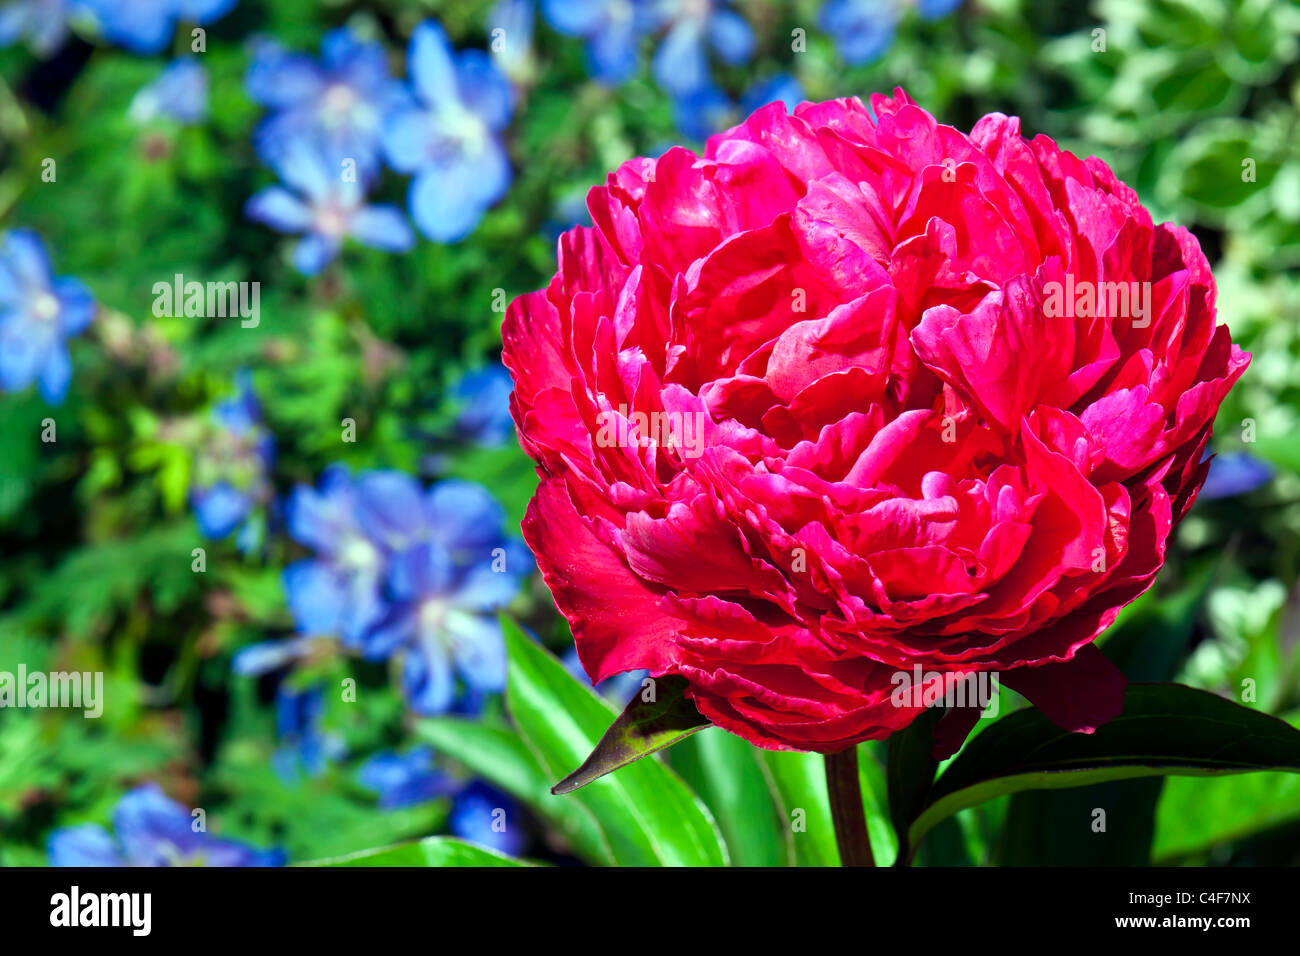 Paeony - Full on colour - Stock Image